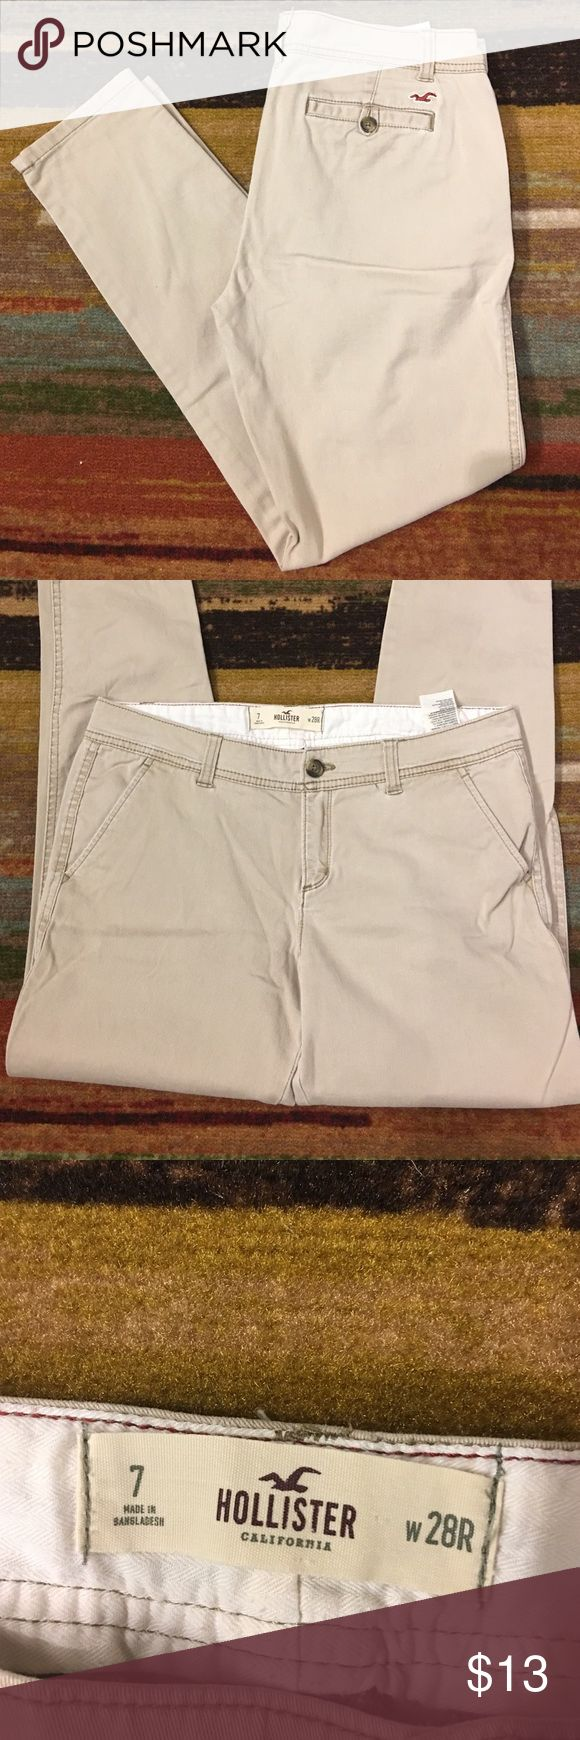 Hollister pants Khaki hollister pants.  No stains, rips or holes.  All belt loops attached Hollister Pants Trousers